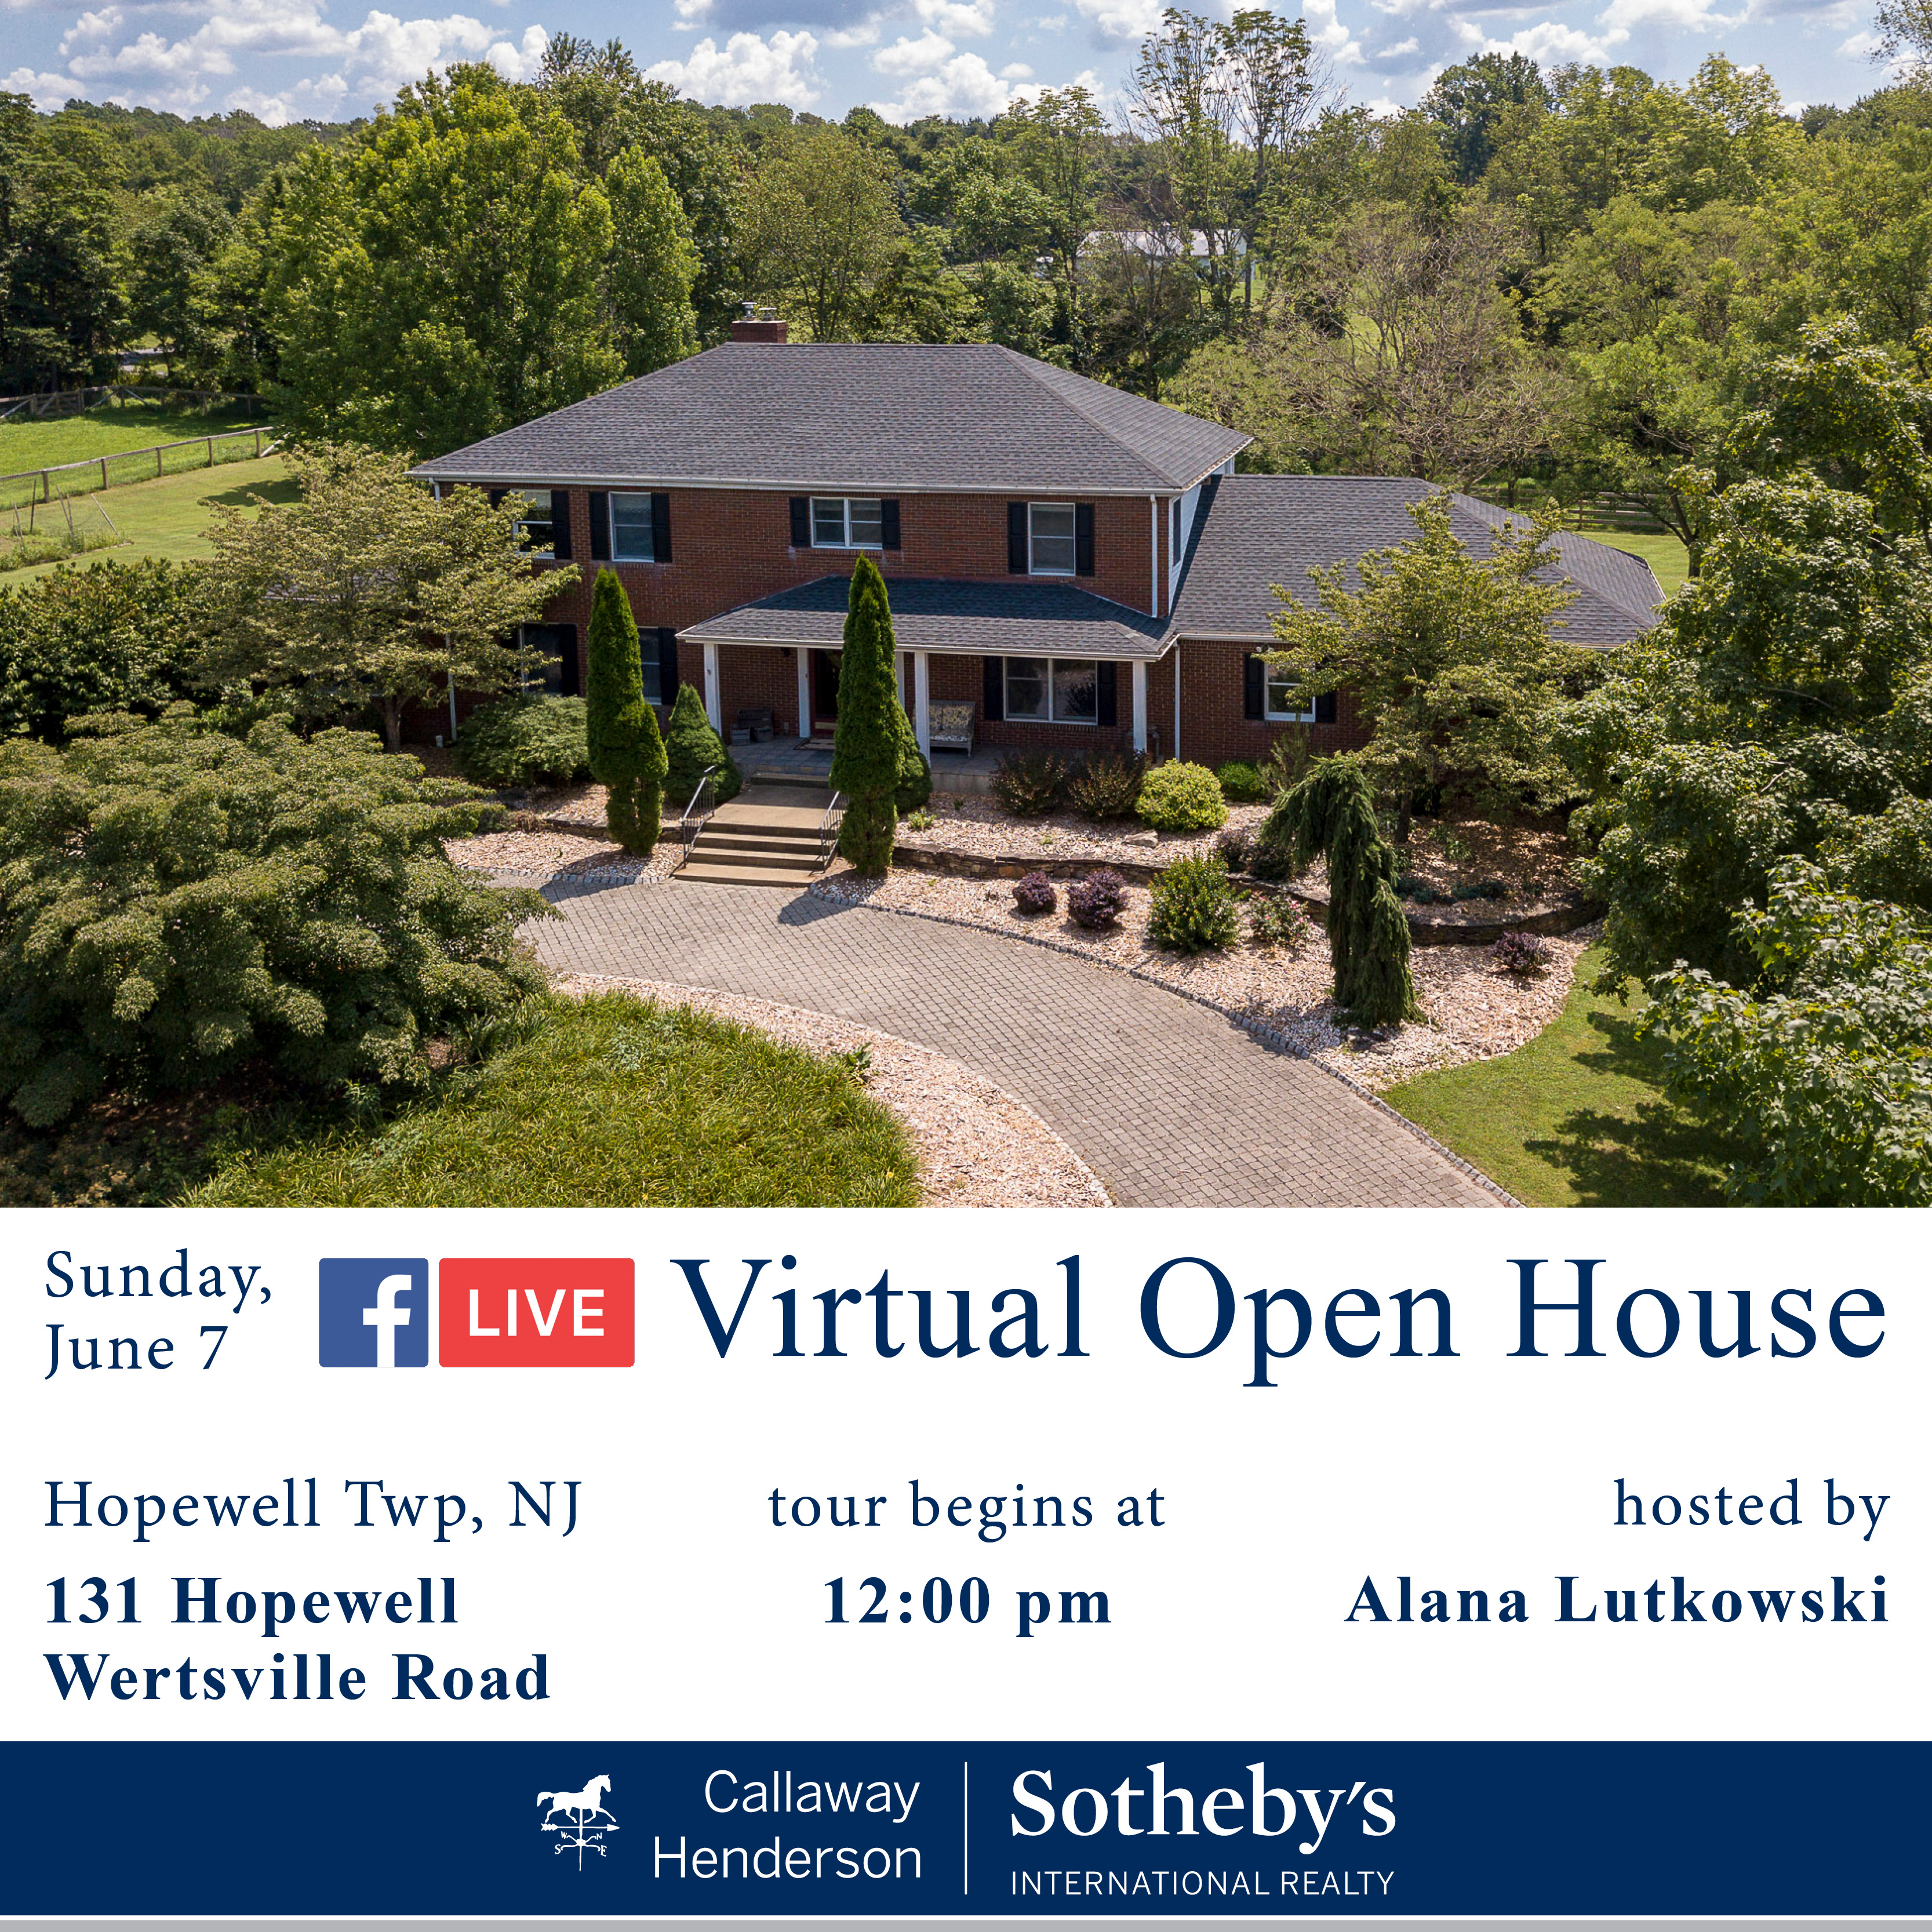 131 Hopewell Wertsville Road